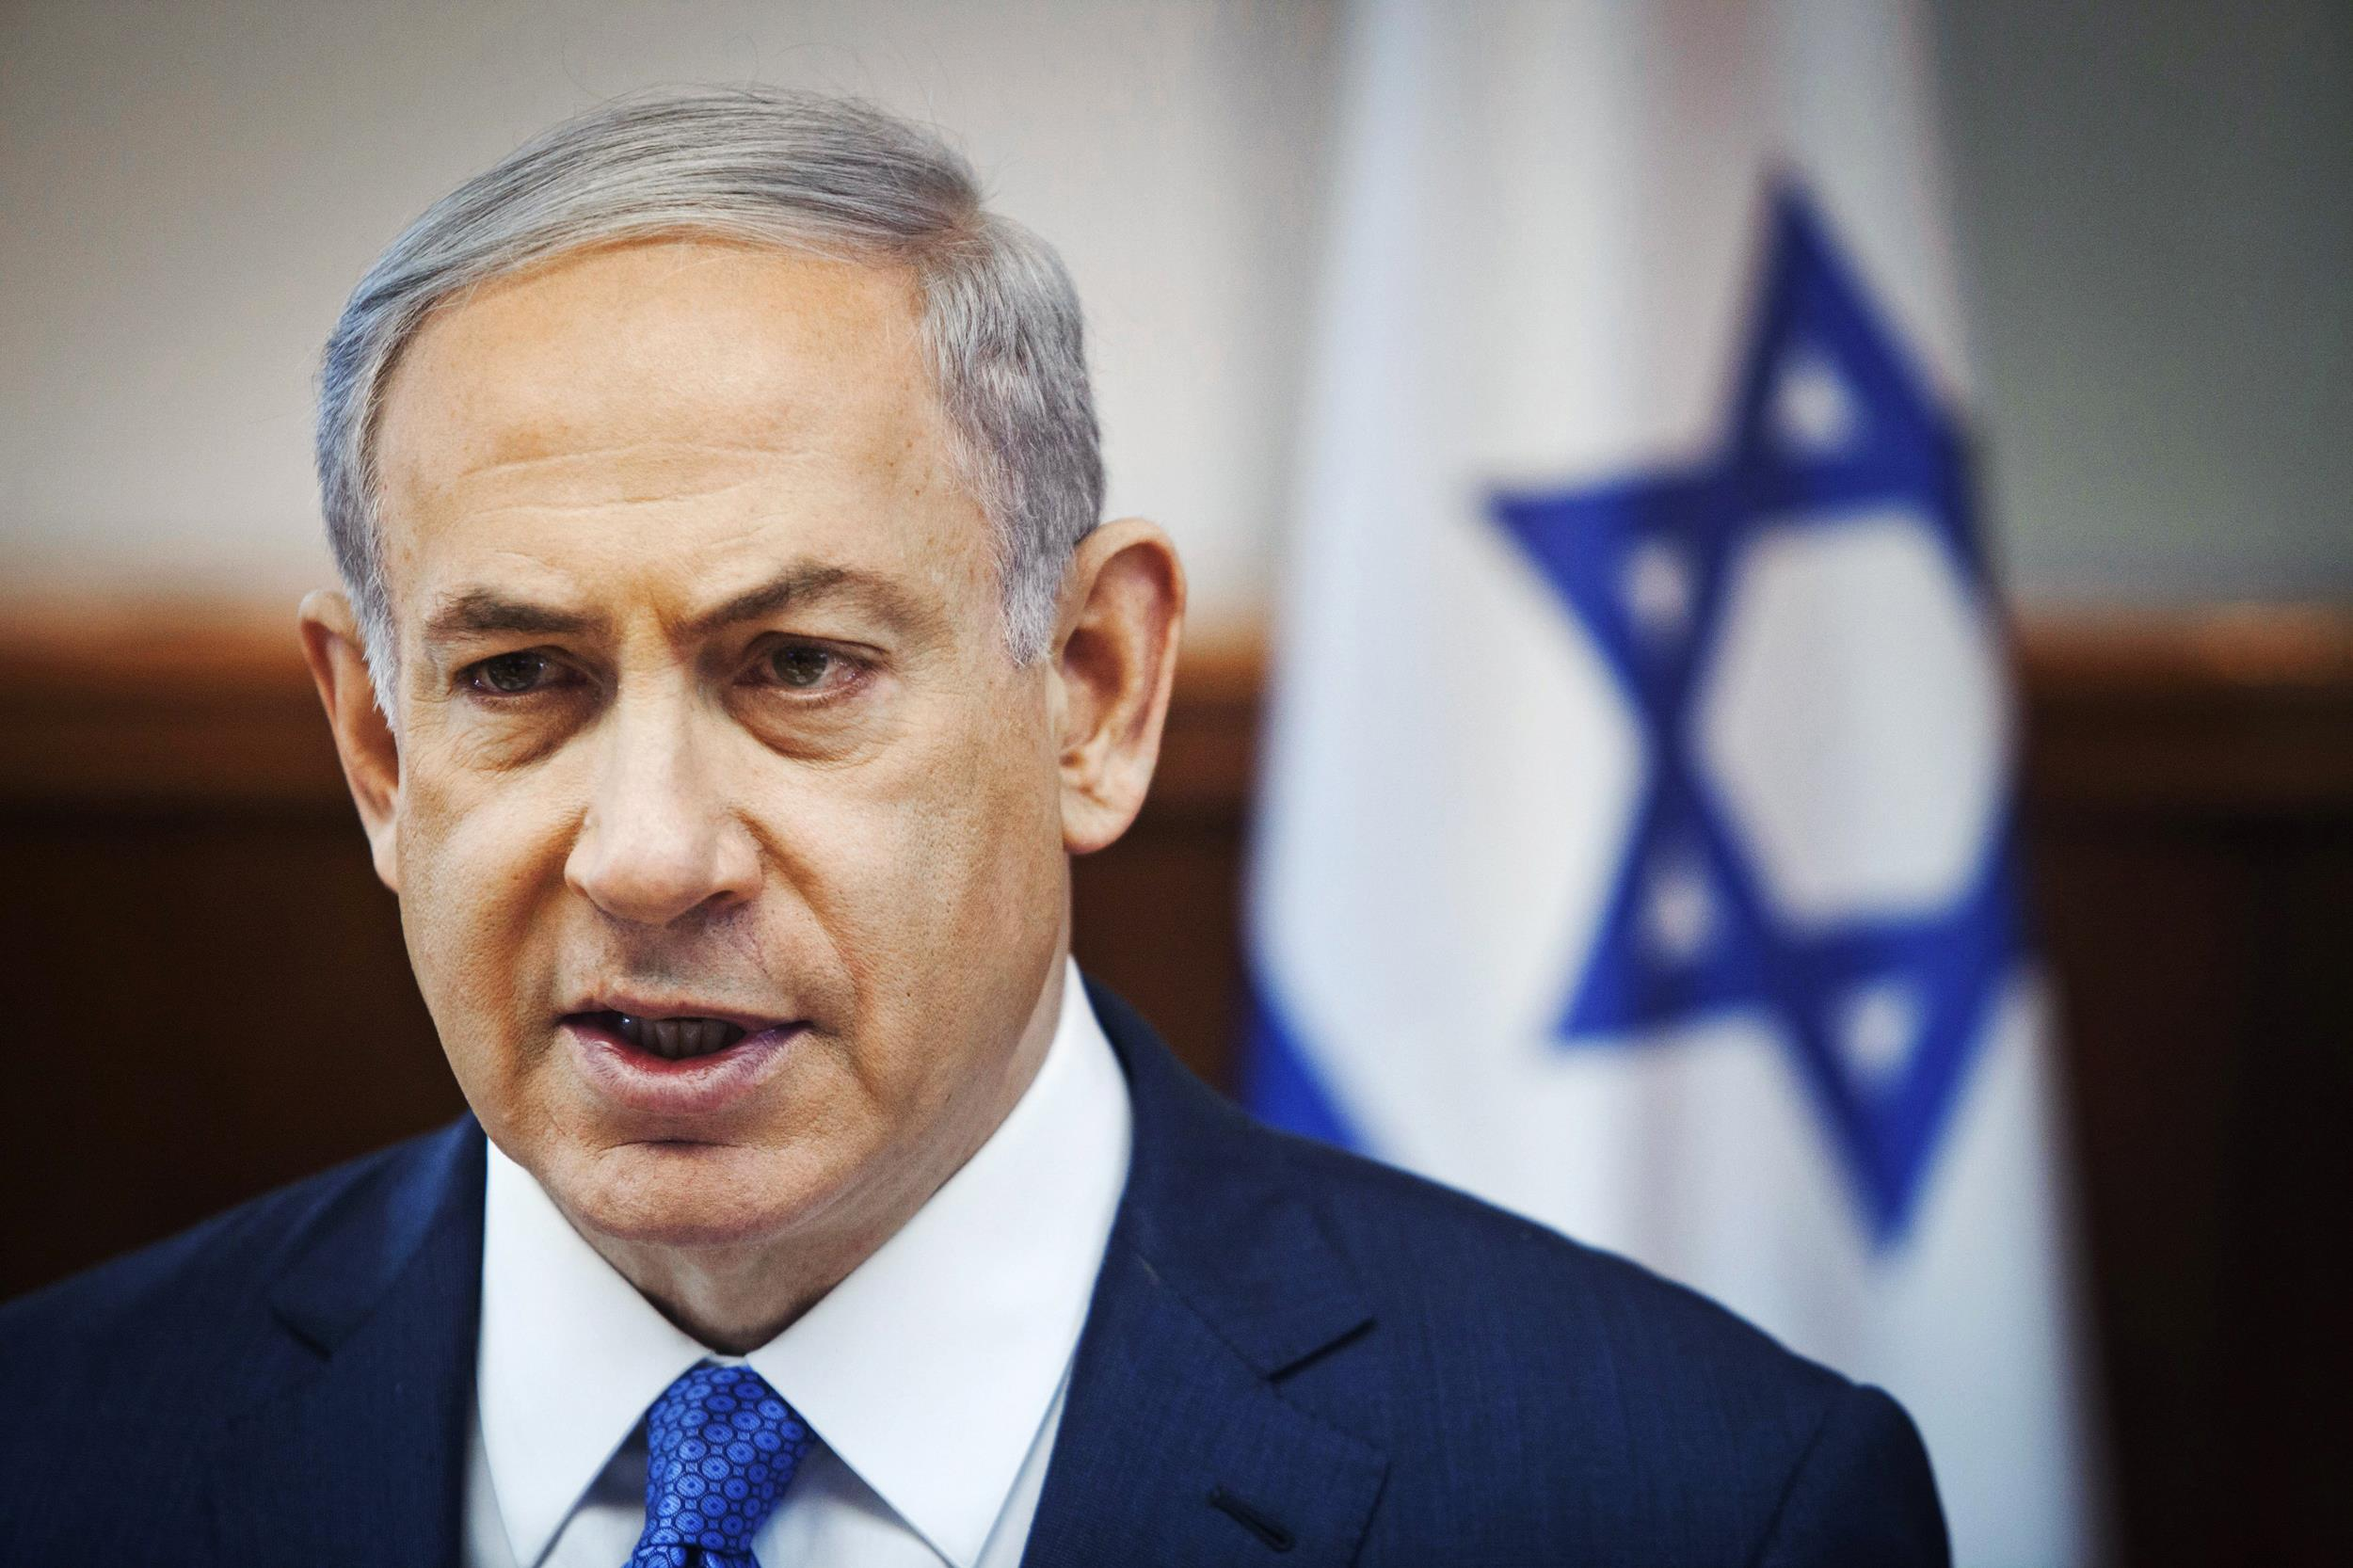 Israel's Netanyahu Makes Deal to Form Coalition Government